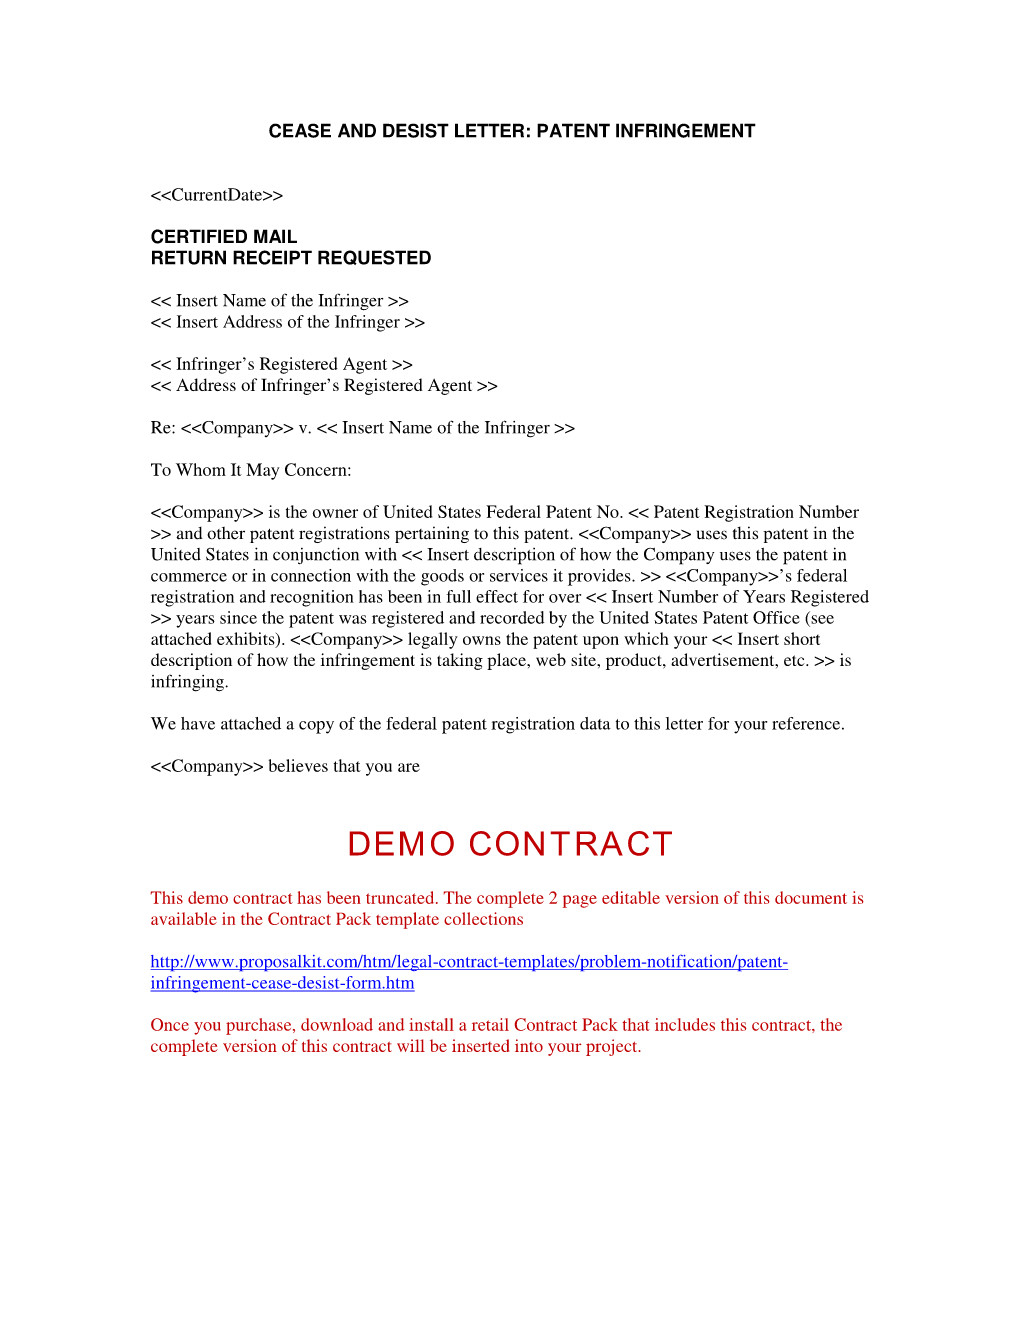 Trademark Cease and Desist Letter Template - Cease and Decease Letter Template Infringement Desist form Cp Patent